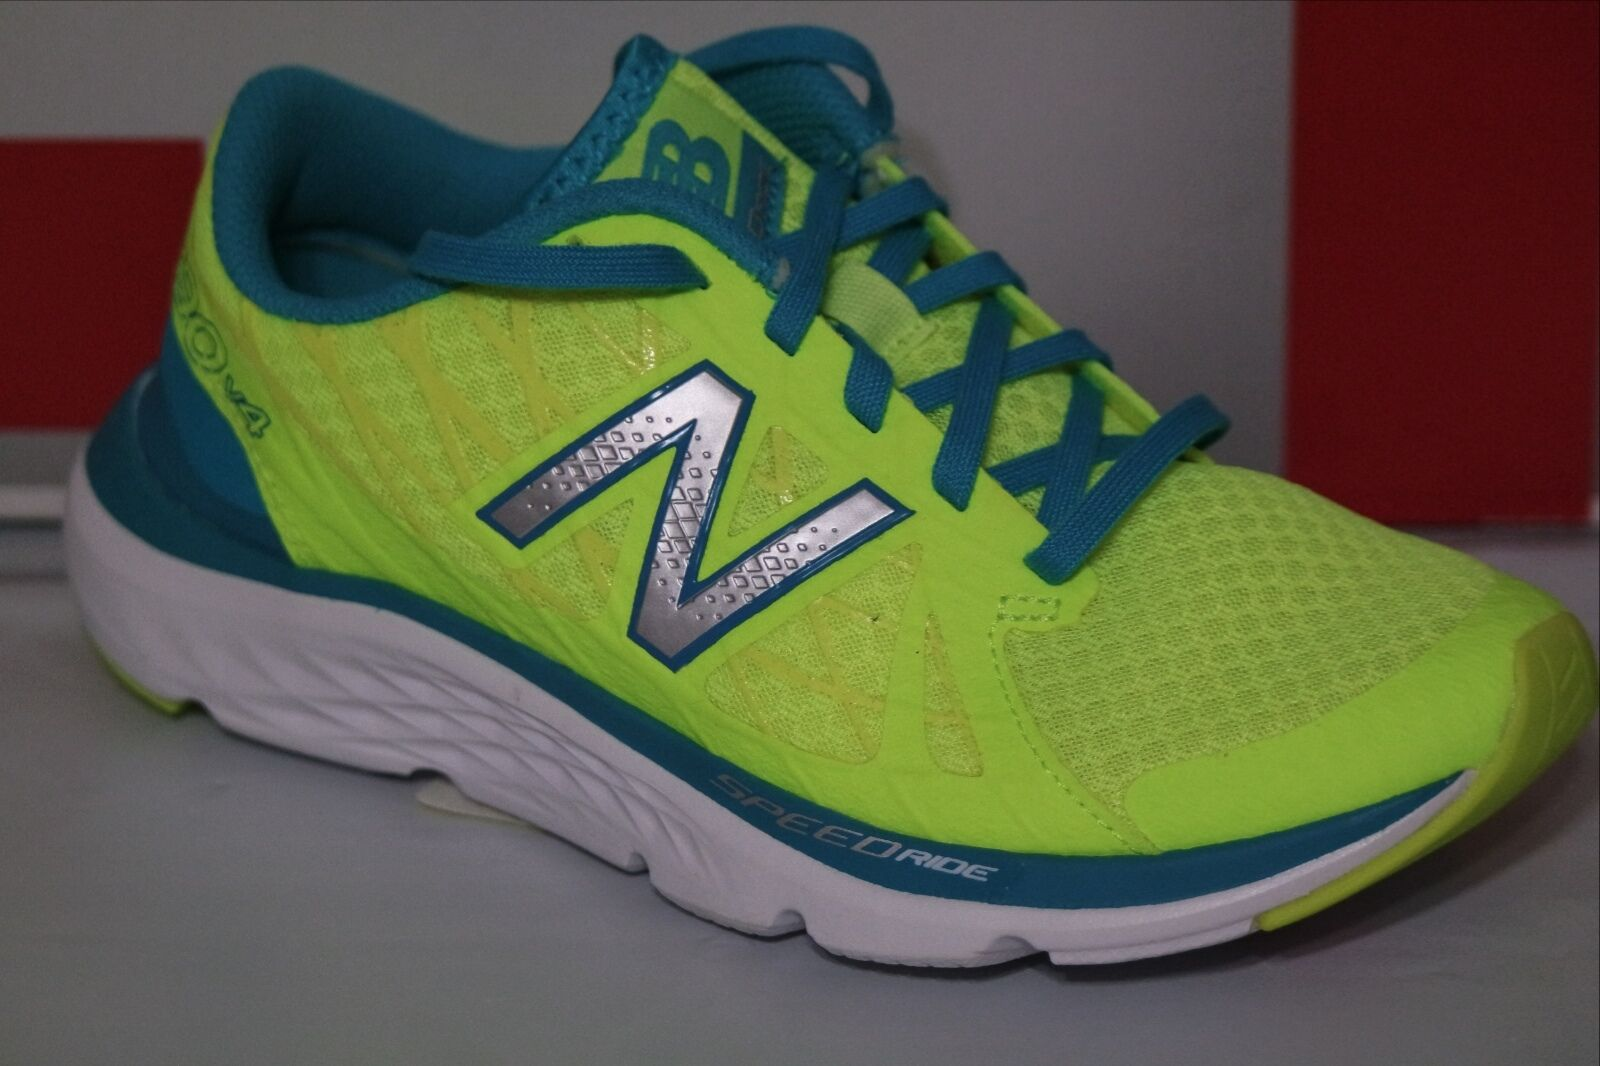 NEW BALANCE 690 WOMEN RUNNING SHOE, SIZE 6, W690LY4, NIB